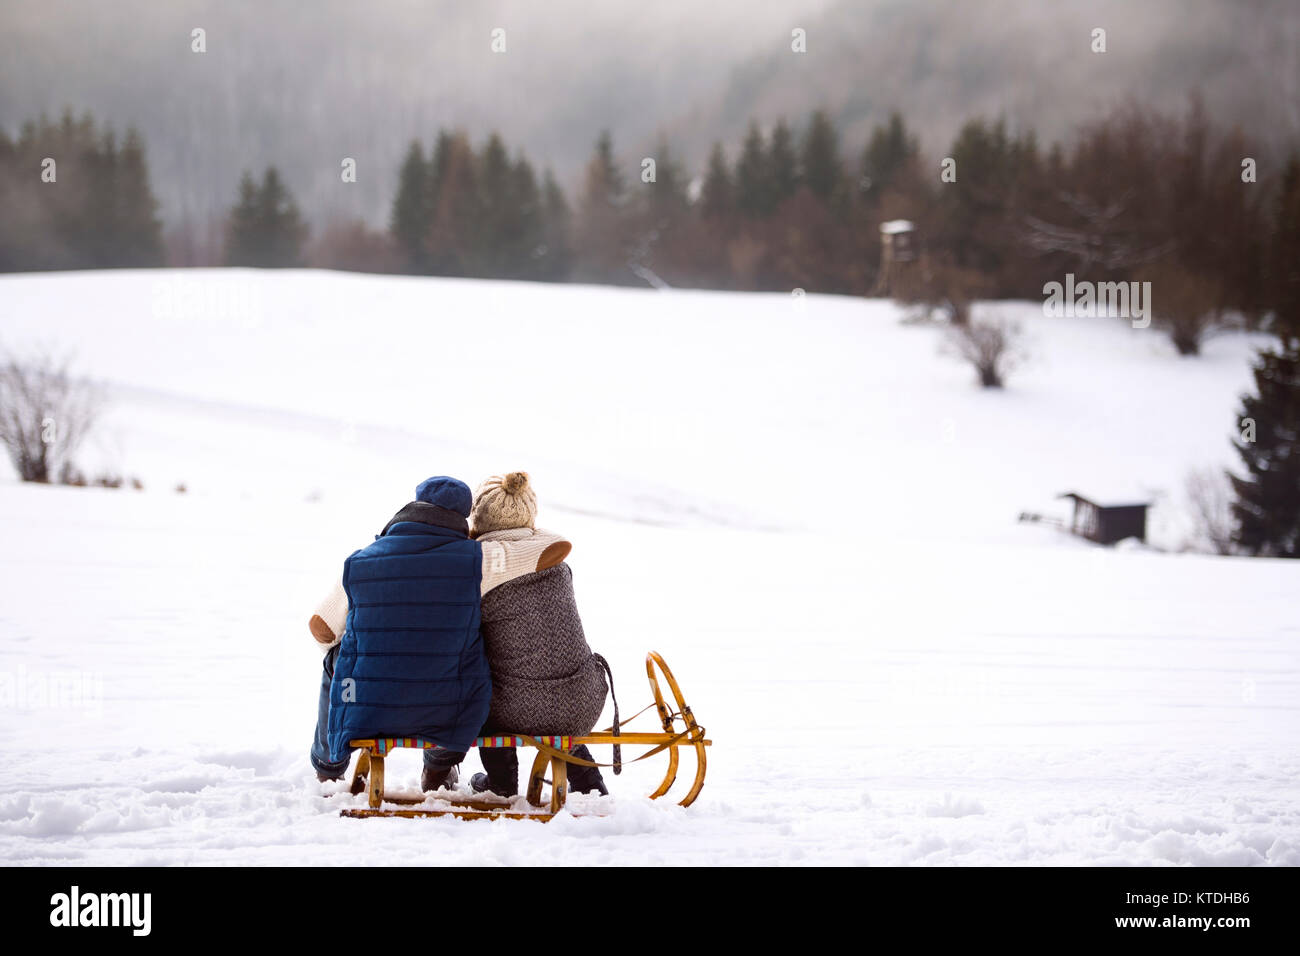 Back view of senior couple sitting side by side on sledge in snow-covered landscape - Stock Image